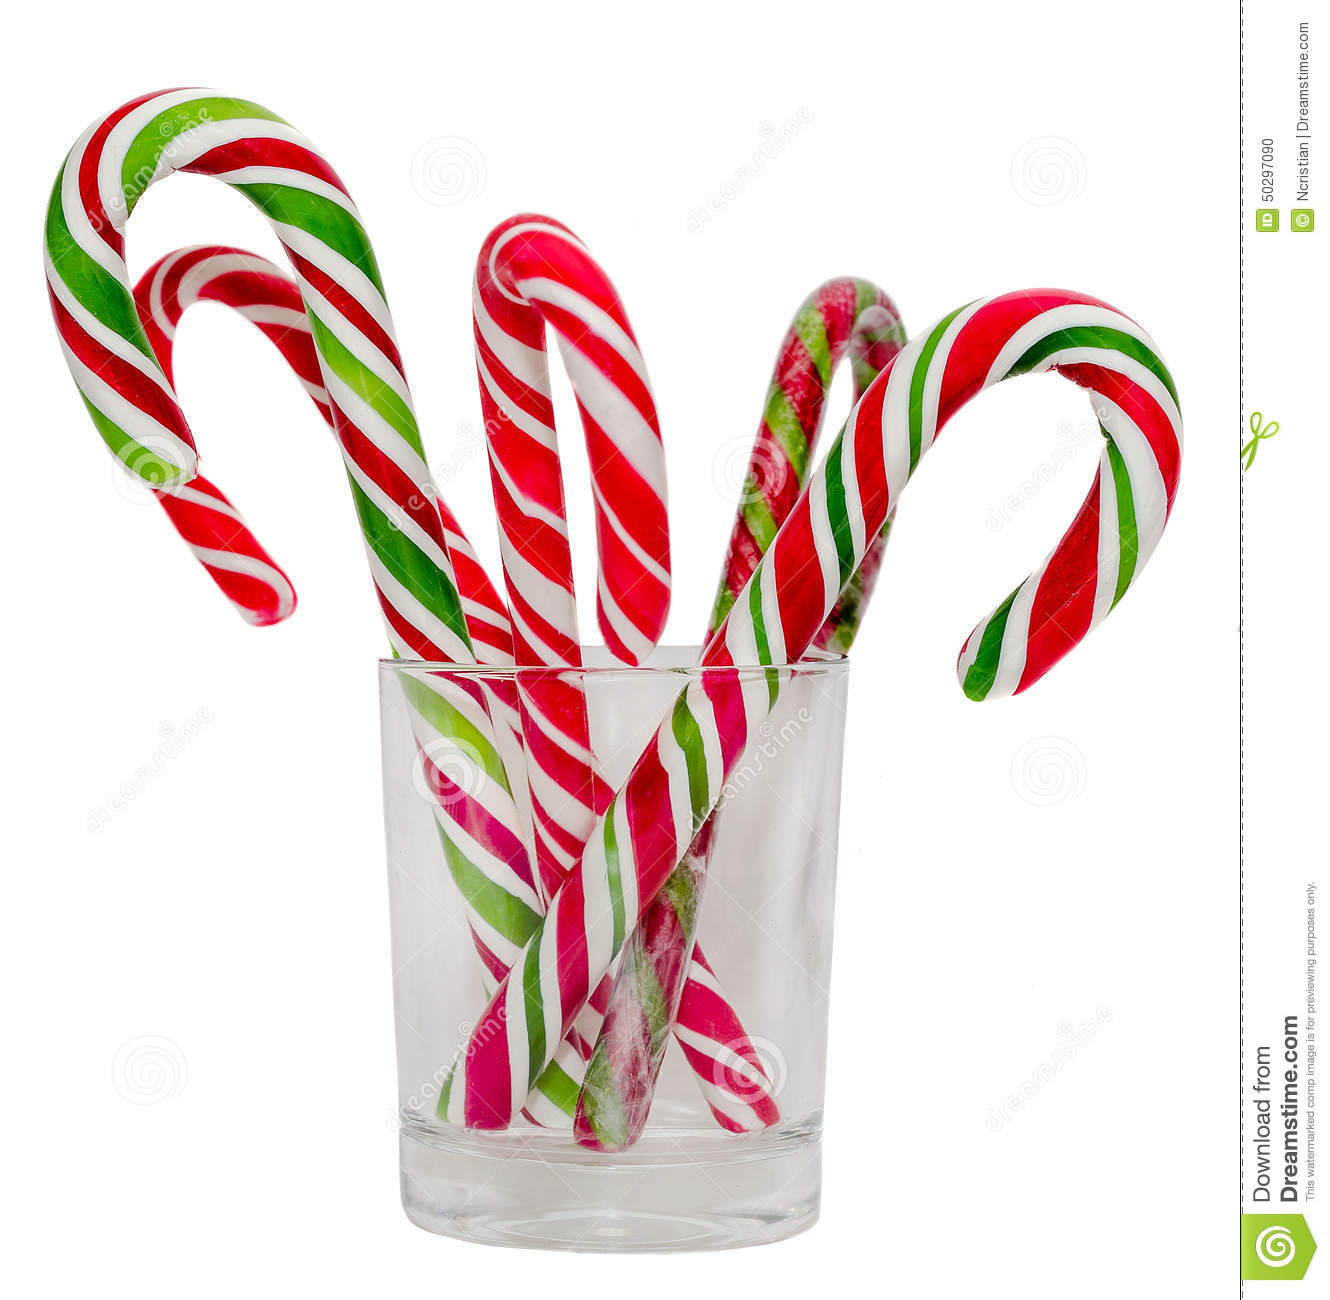 Christmas Candy Sticks  Colored Candy Sticks And Christmas Lollipops In A